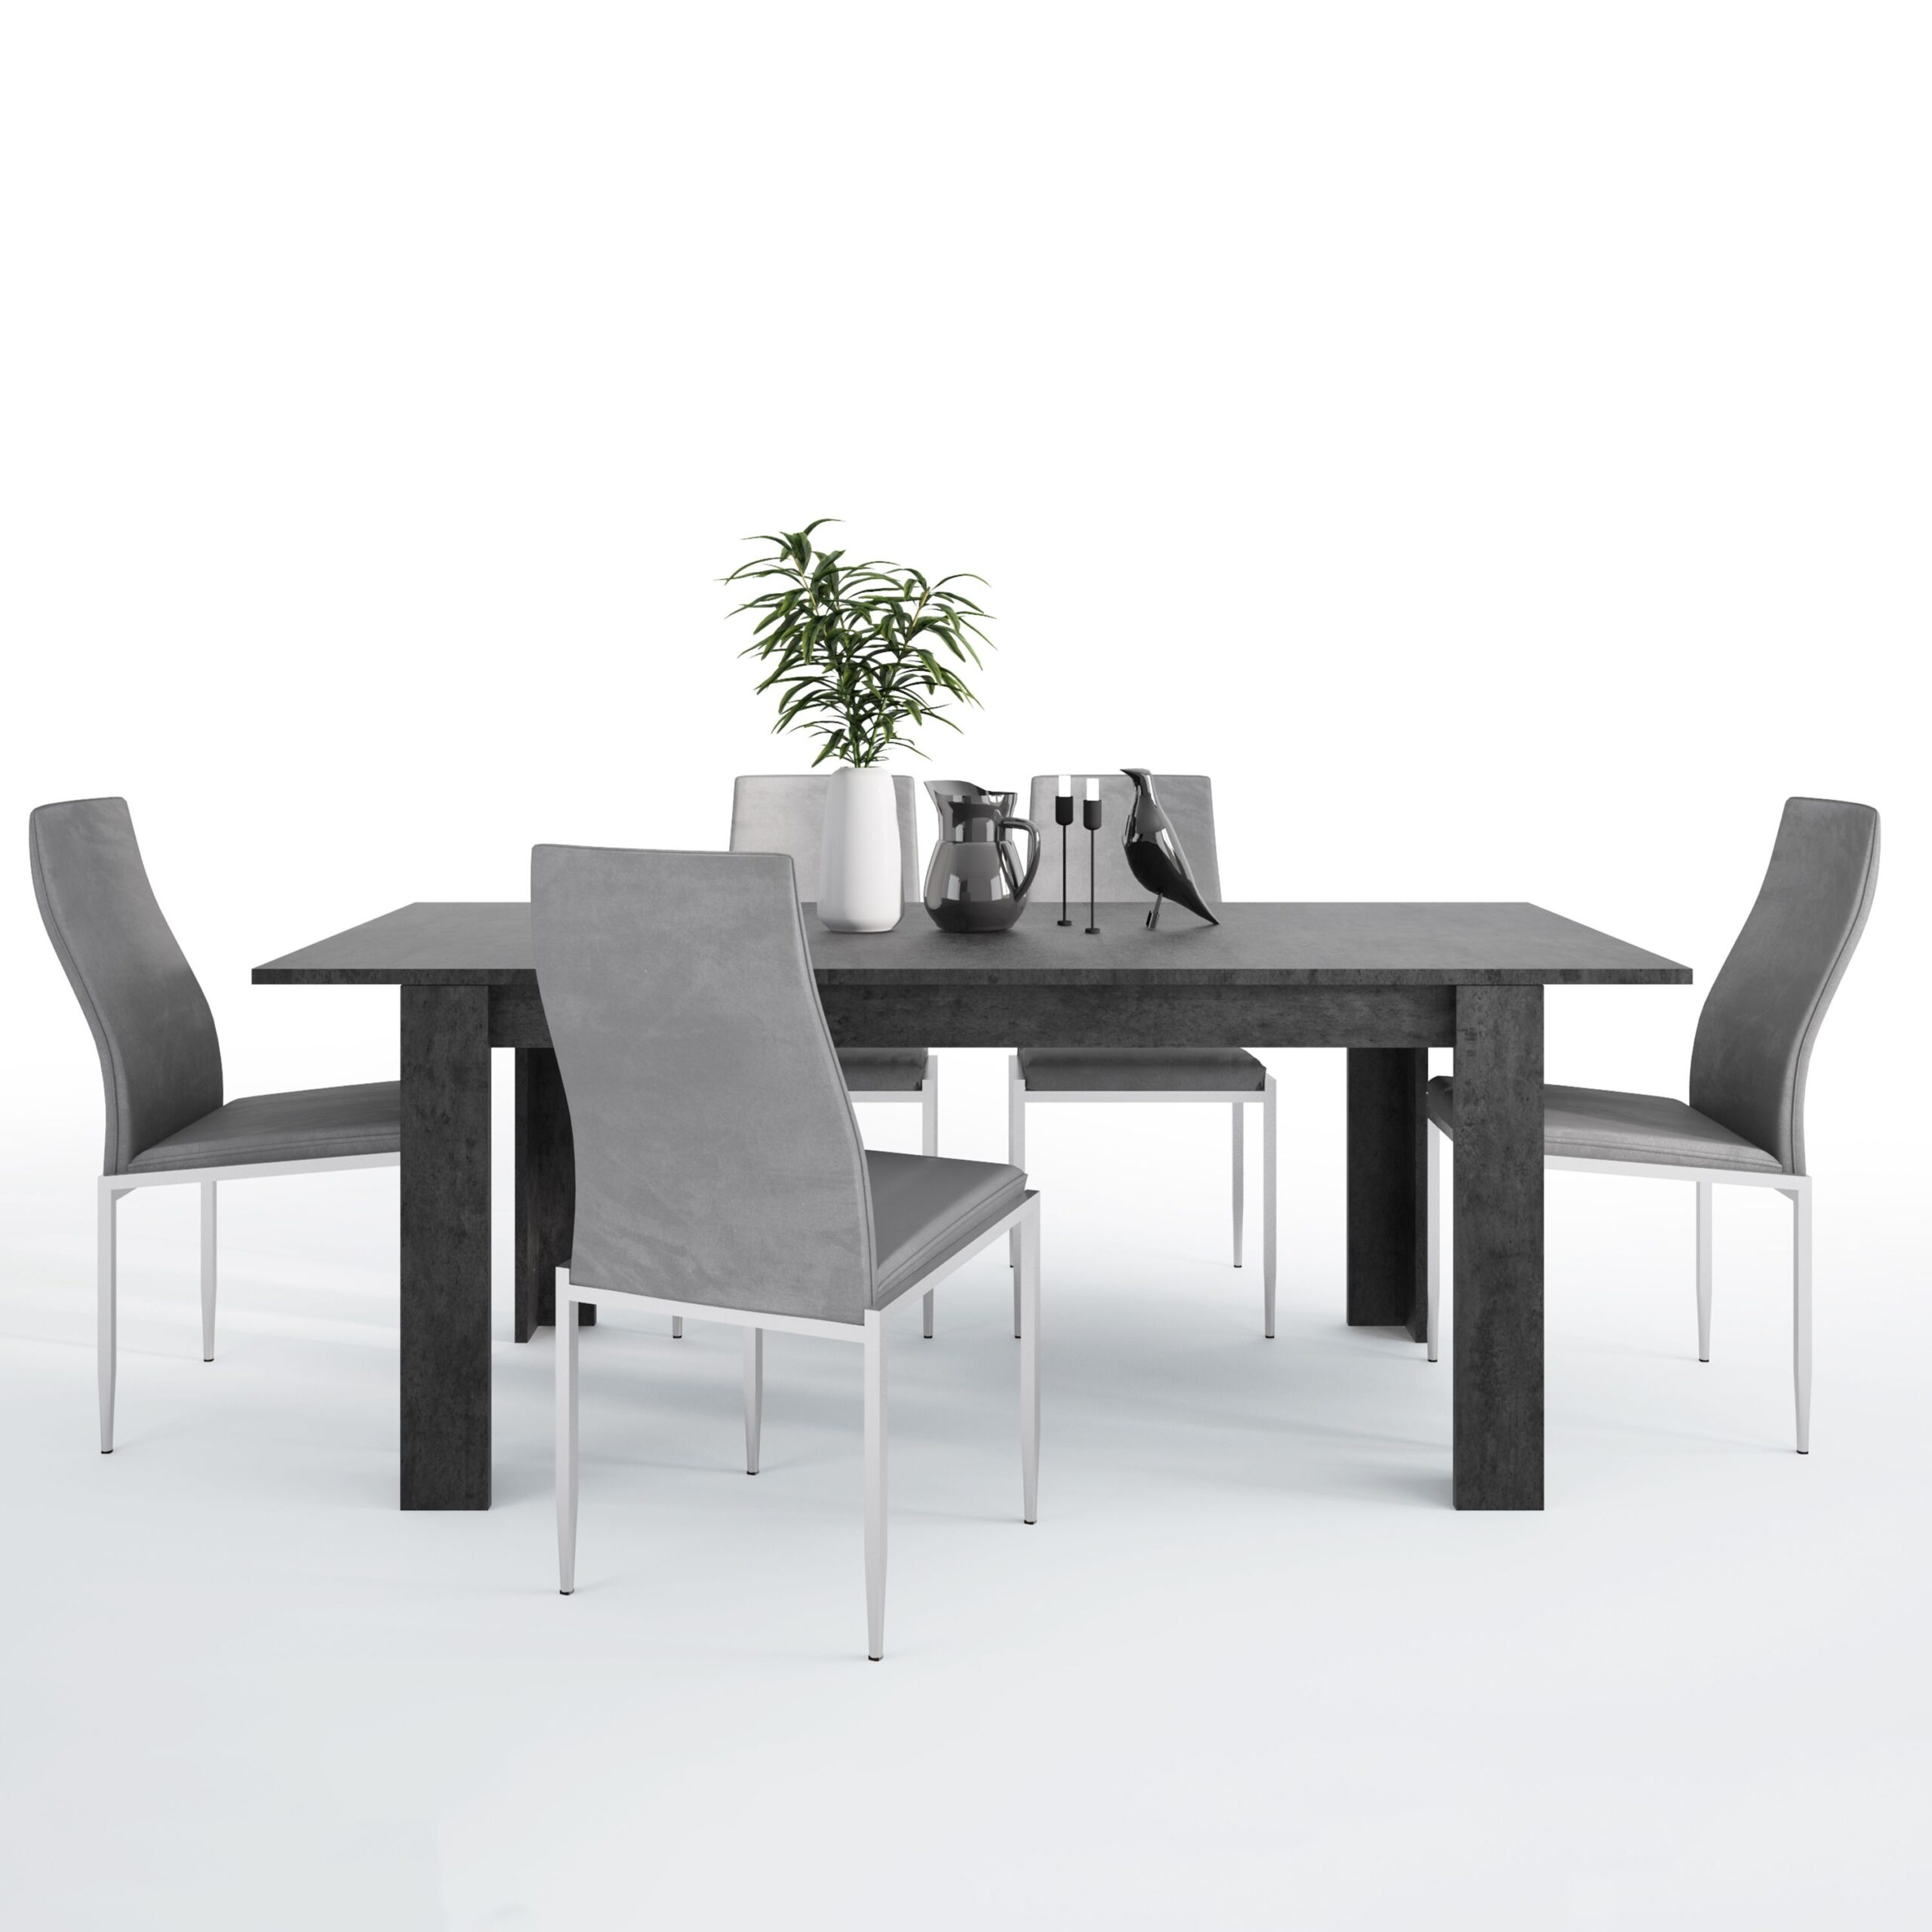 Gerzing Dining set package Gerzing Dining table + 6 Lillie High Back Chair Grey.